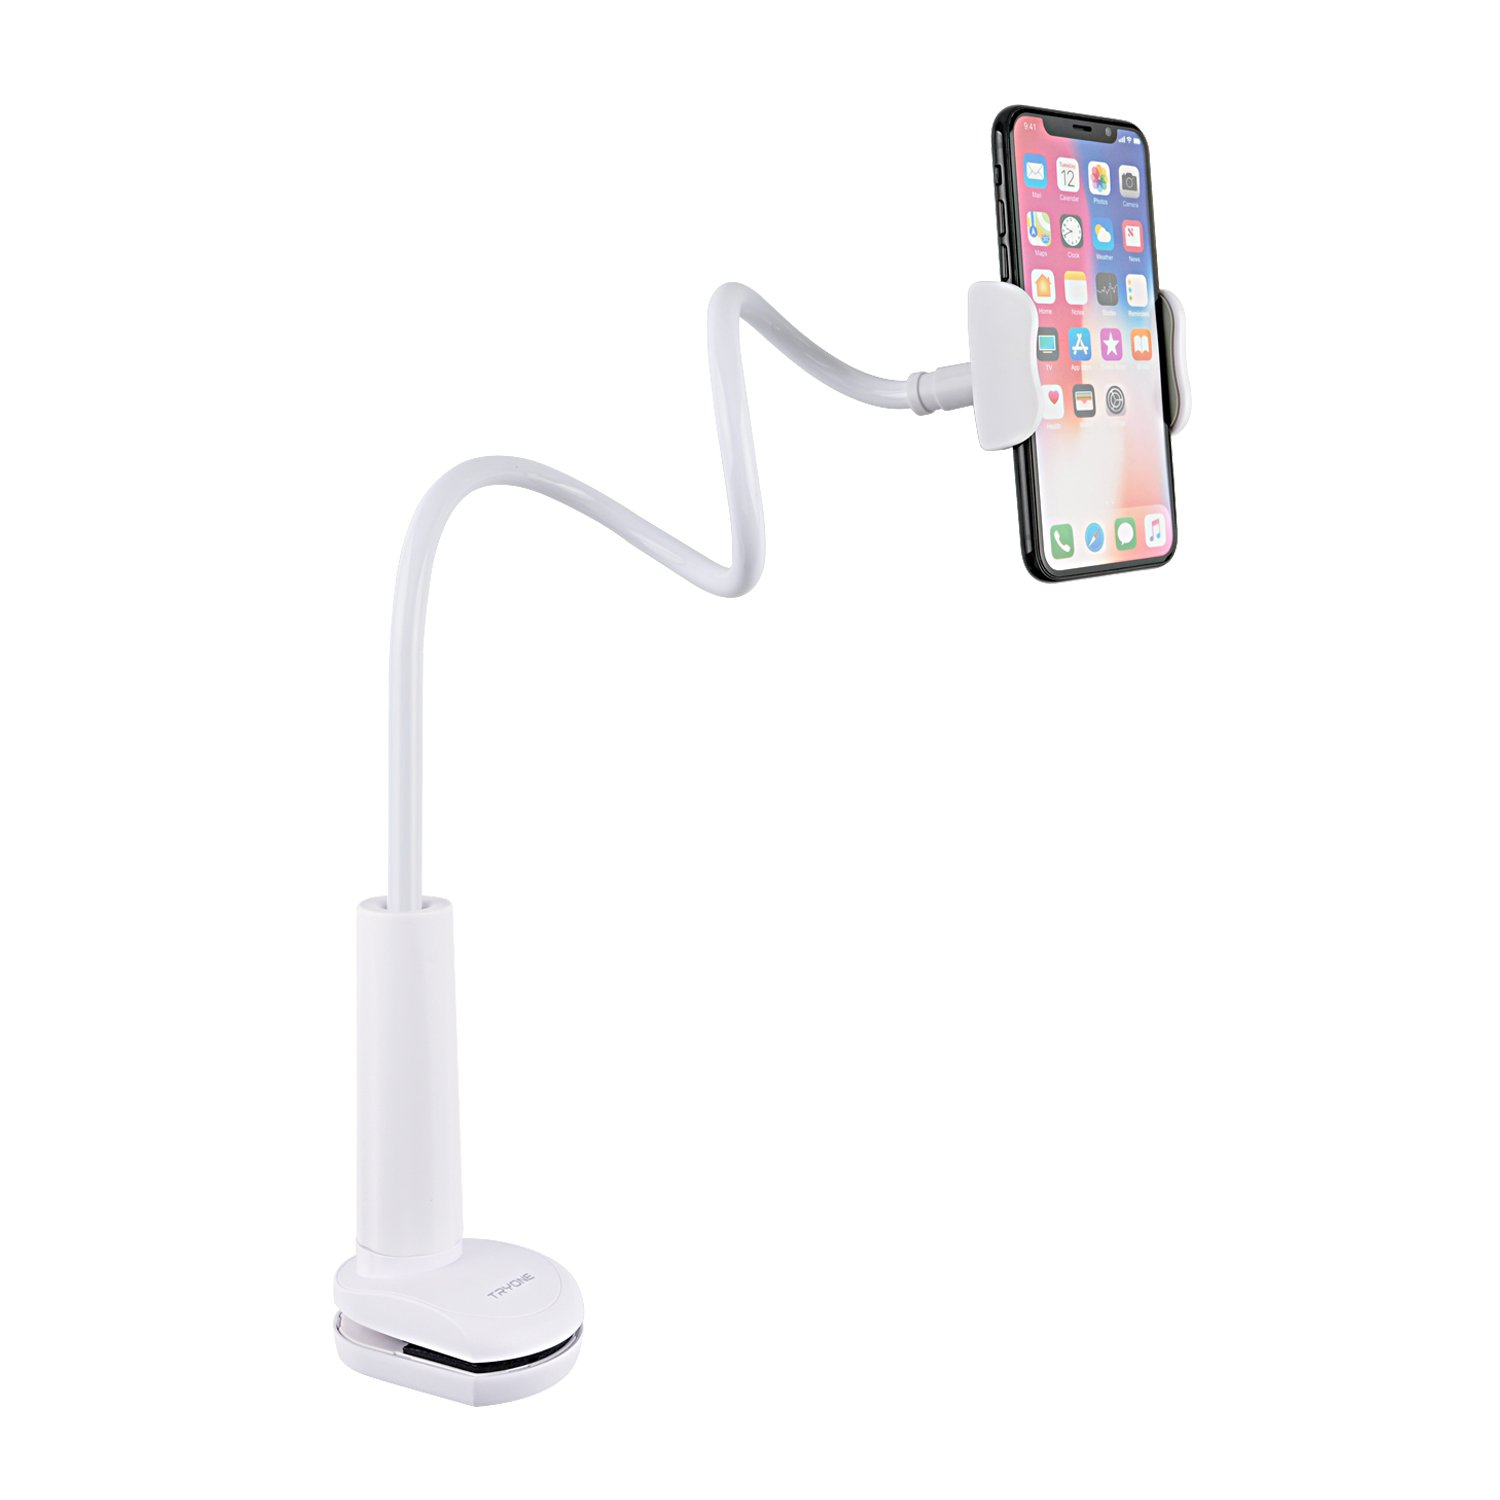 Tryone Gooseneck Phone Holder, Flexible Long Arm Mount Stand Compatible with Smartphones, Max Width 3in, Overall Length 27.5in(White) Tryone Direct